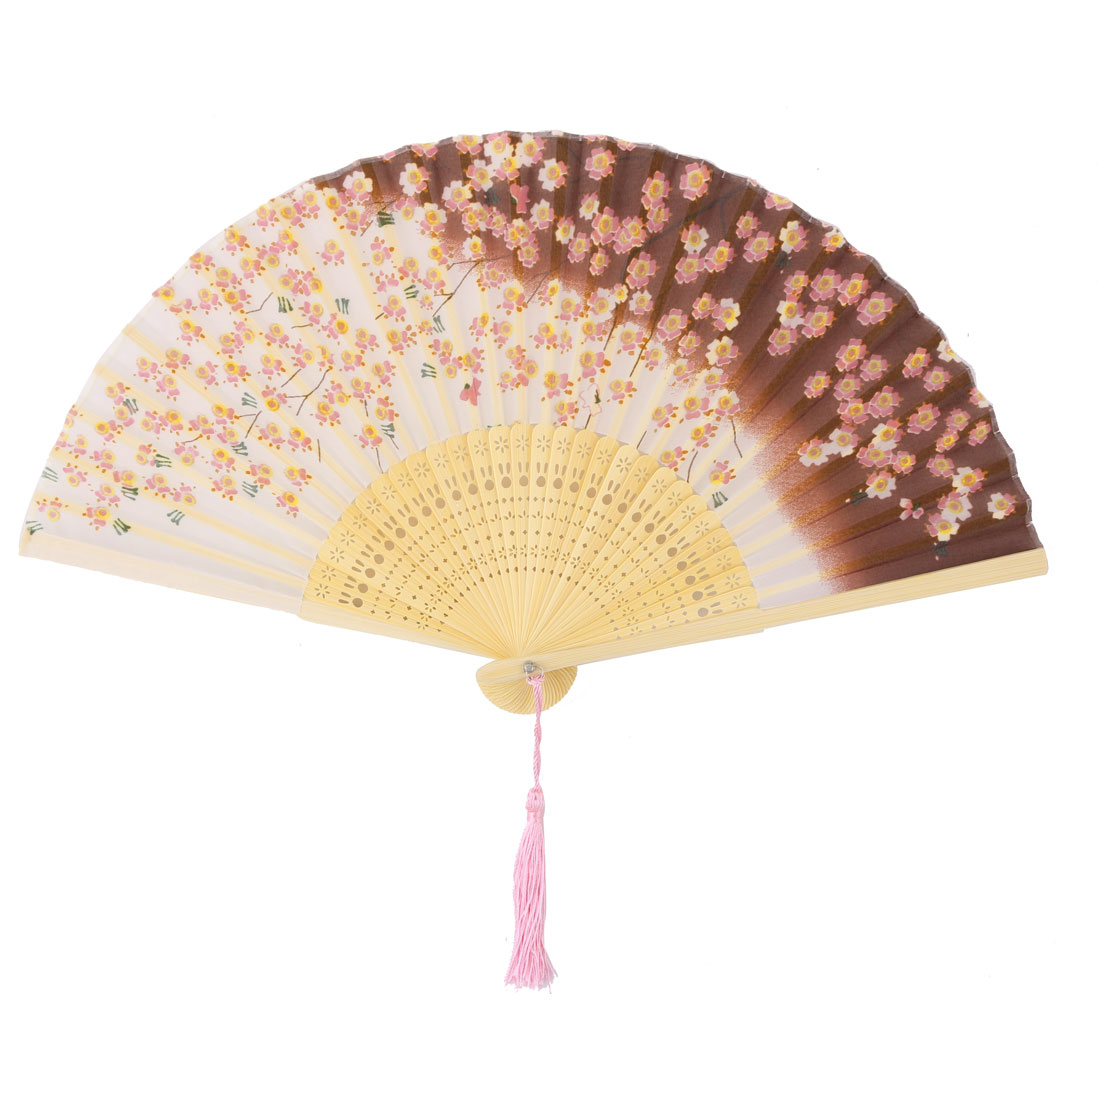 Lady Party Bamboo Frame Flower Pattern Chinese Exquisite Hollow Ribs Folding Fan